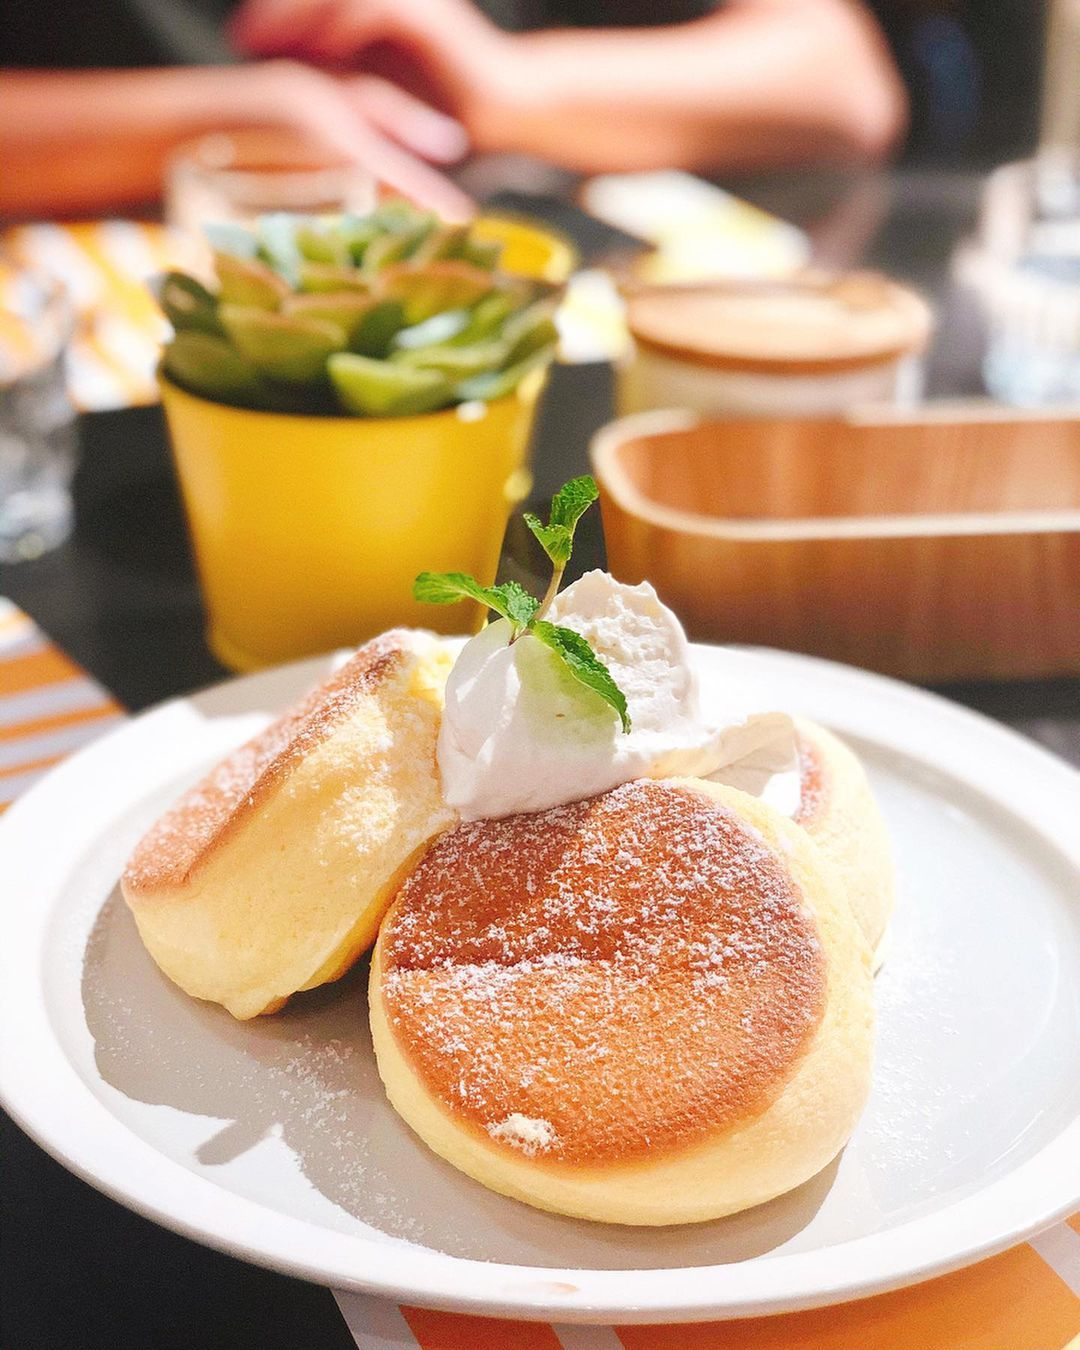 International Pancake Day: Where To Find The Best Pancakes In Hong Kong